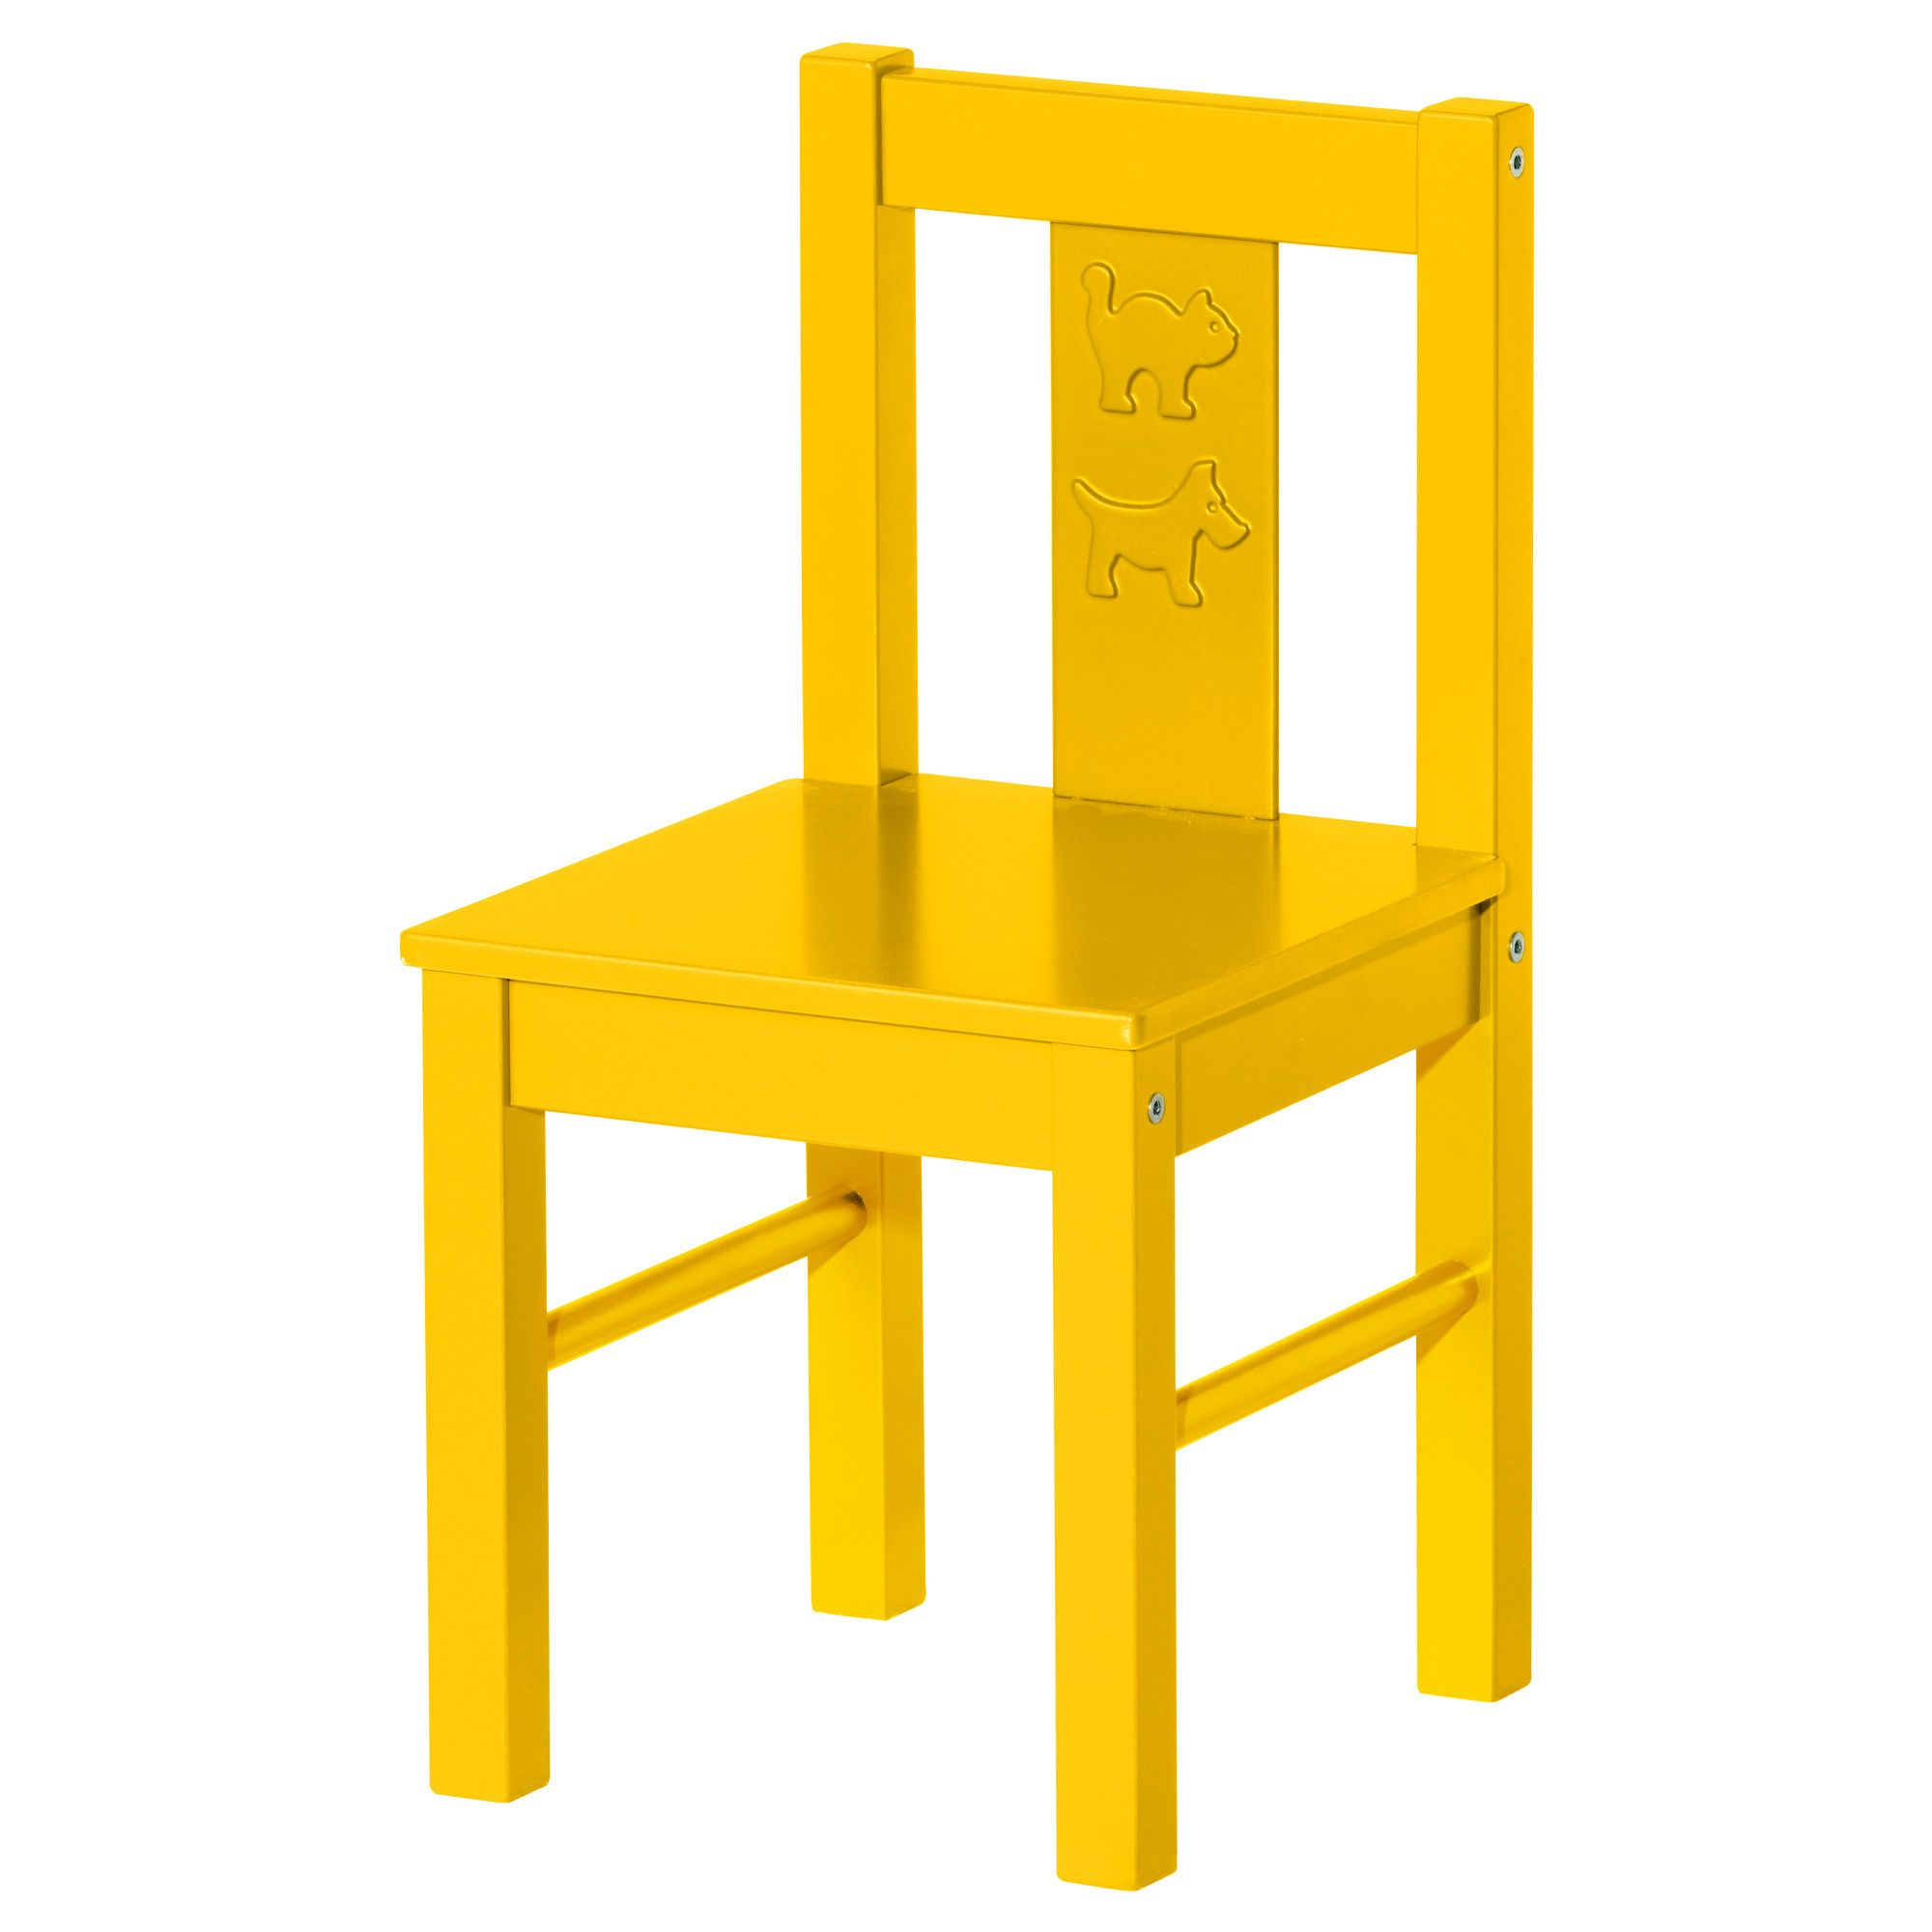 Remarkable Us Furniture And Home Furnishings Modern Kids Chairs Andrewgaddart Wooden Chair Designs For Living Room Andrewgaddartcom